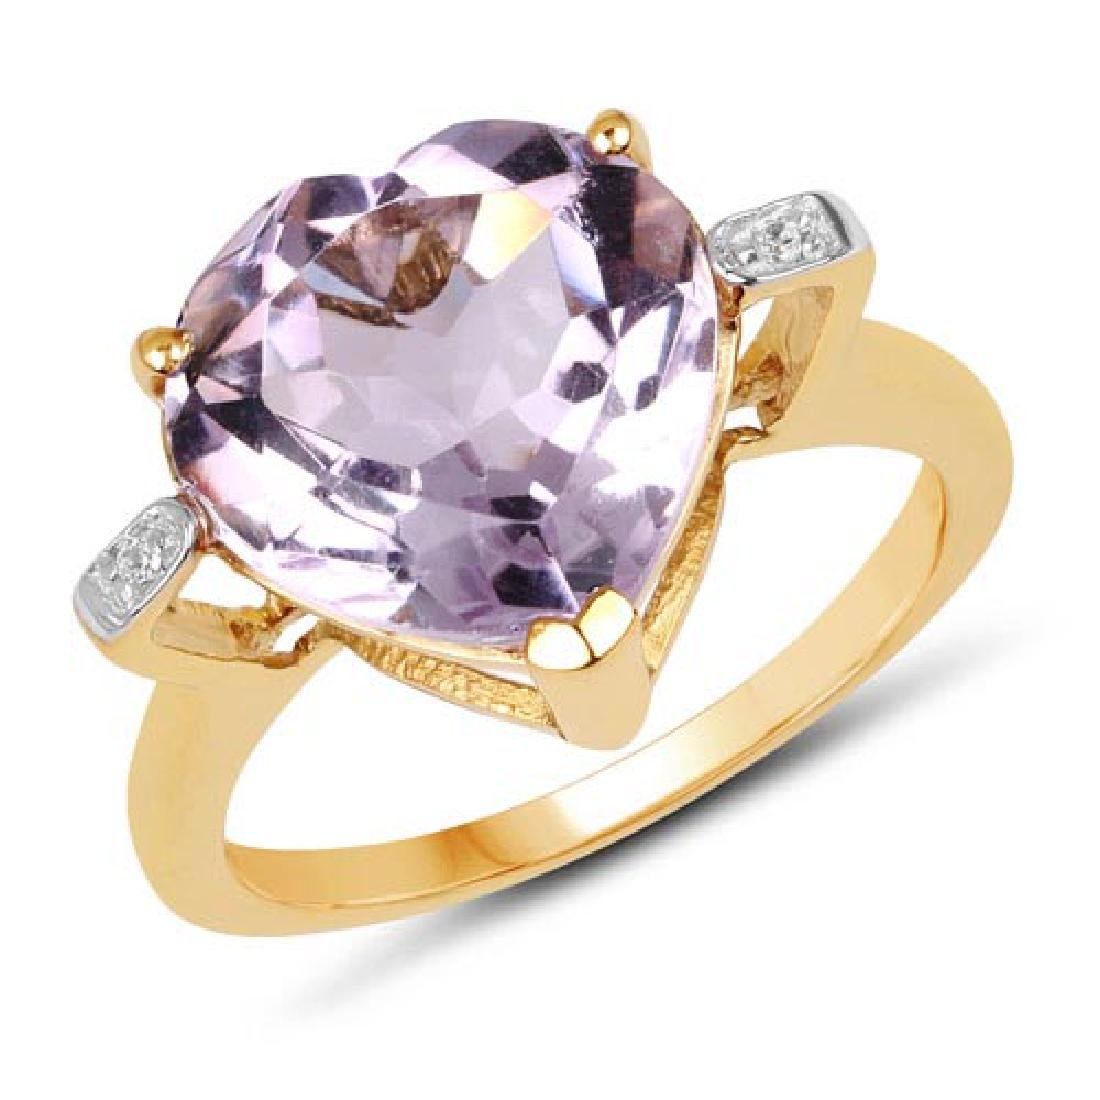 14K Yellow Gold Plated 5.26 Carat Genuine Pink Amethyst